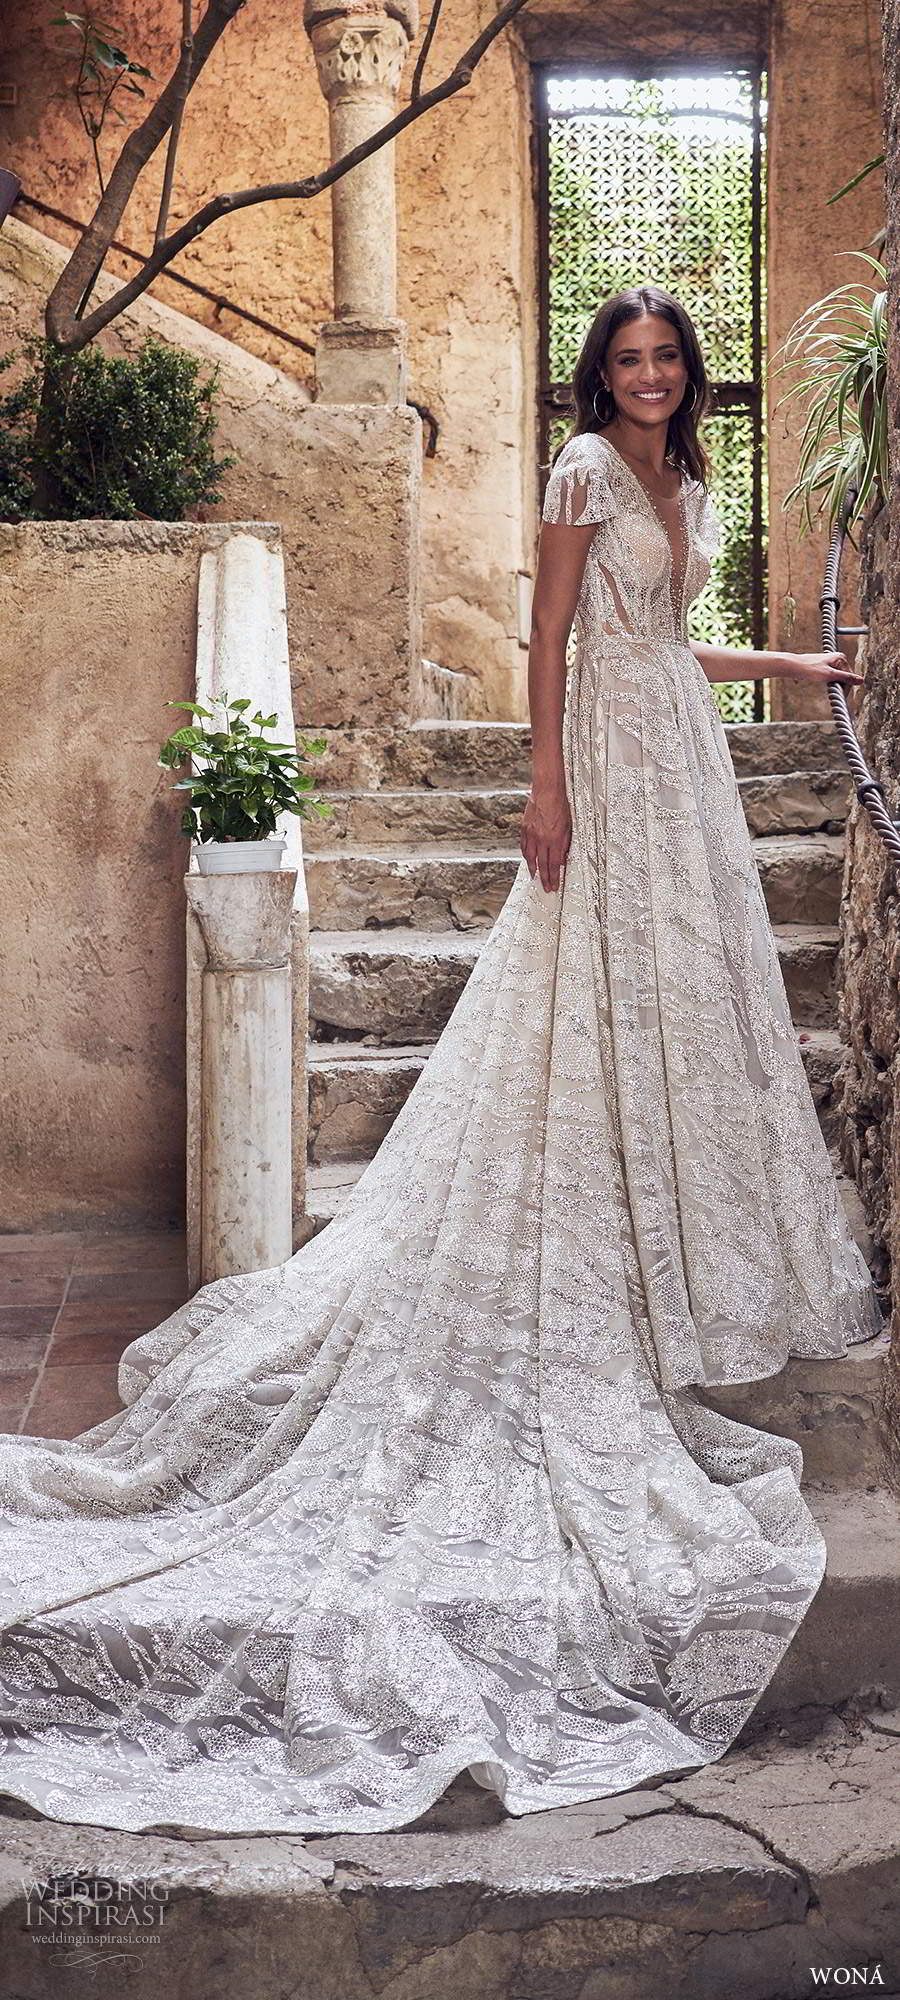 wona fall 2020 bridal short sleeves plunging v neckline fully embellished a line ball gown wedding dress low scoop back cathedral train (9) mv